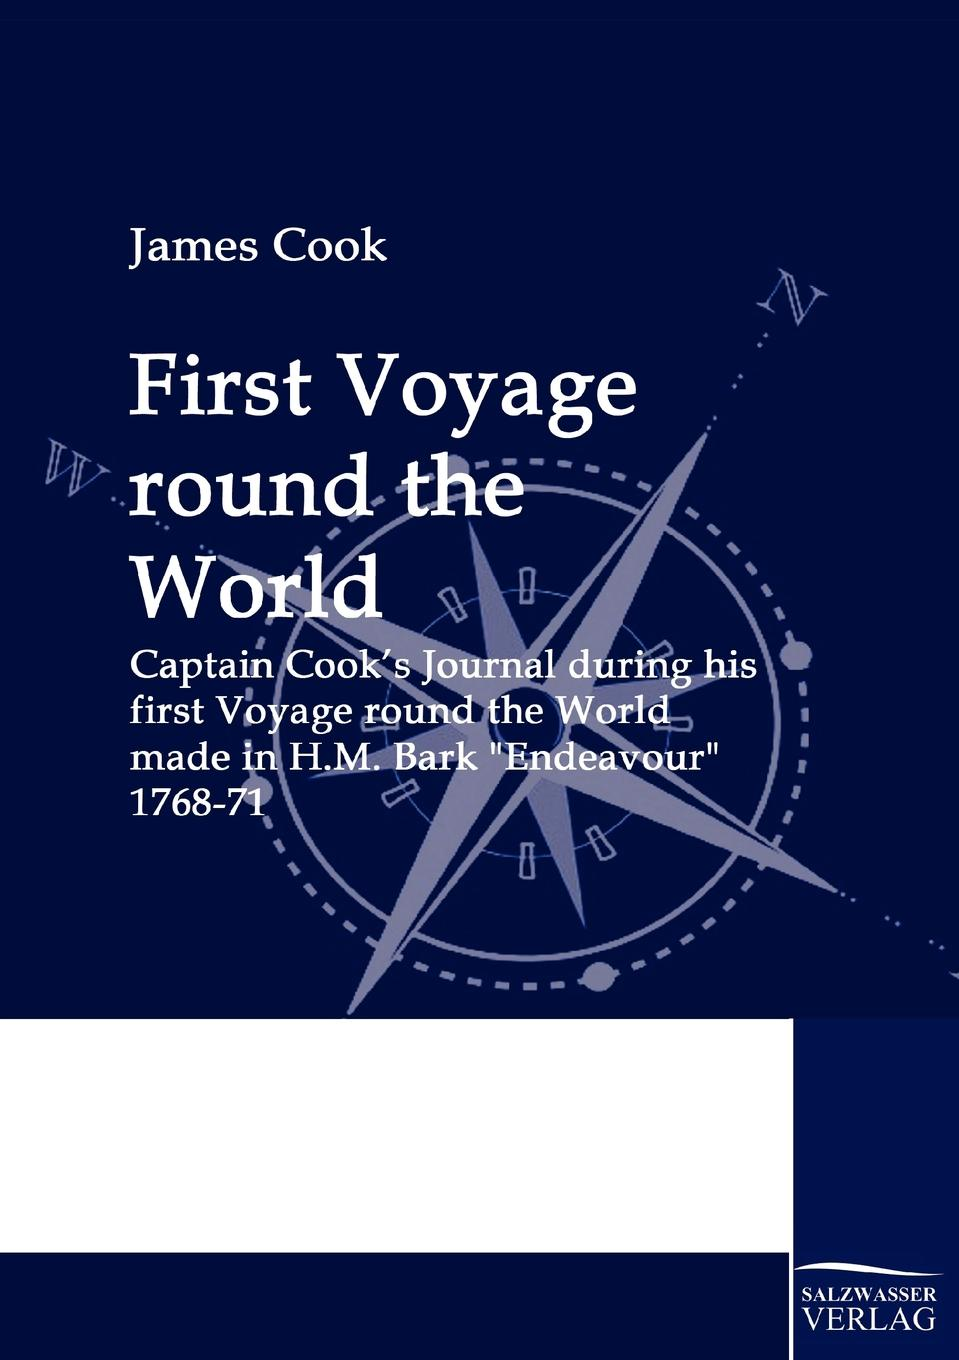 James Cook First Voyage round the World